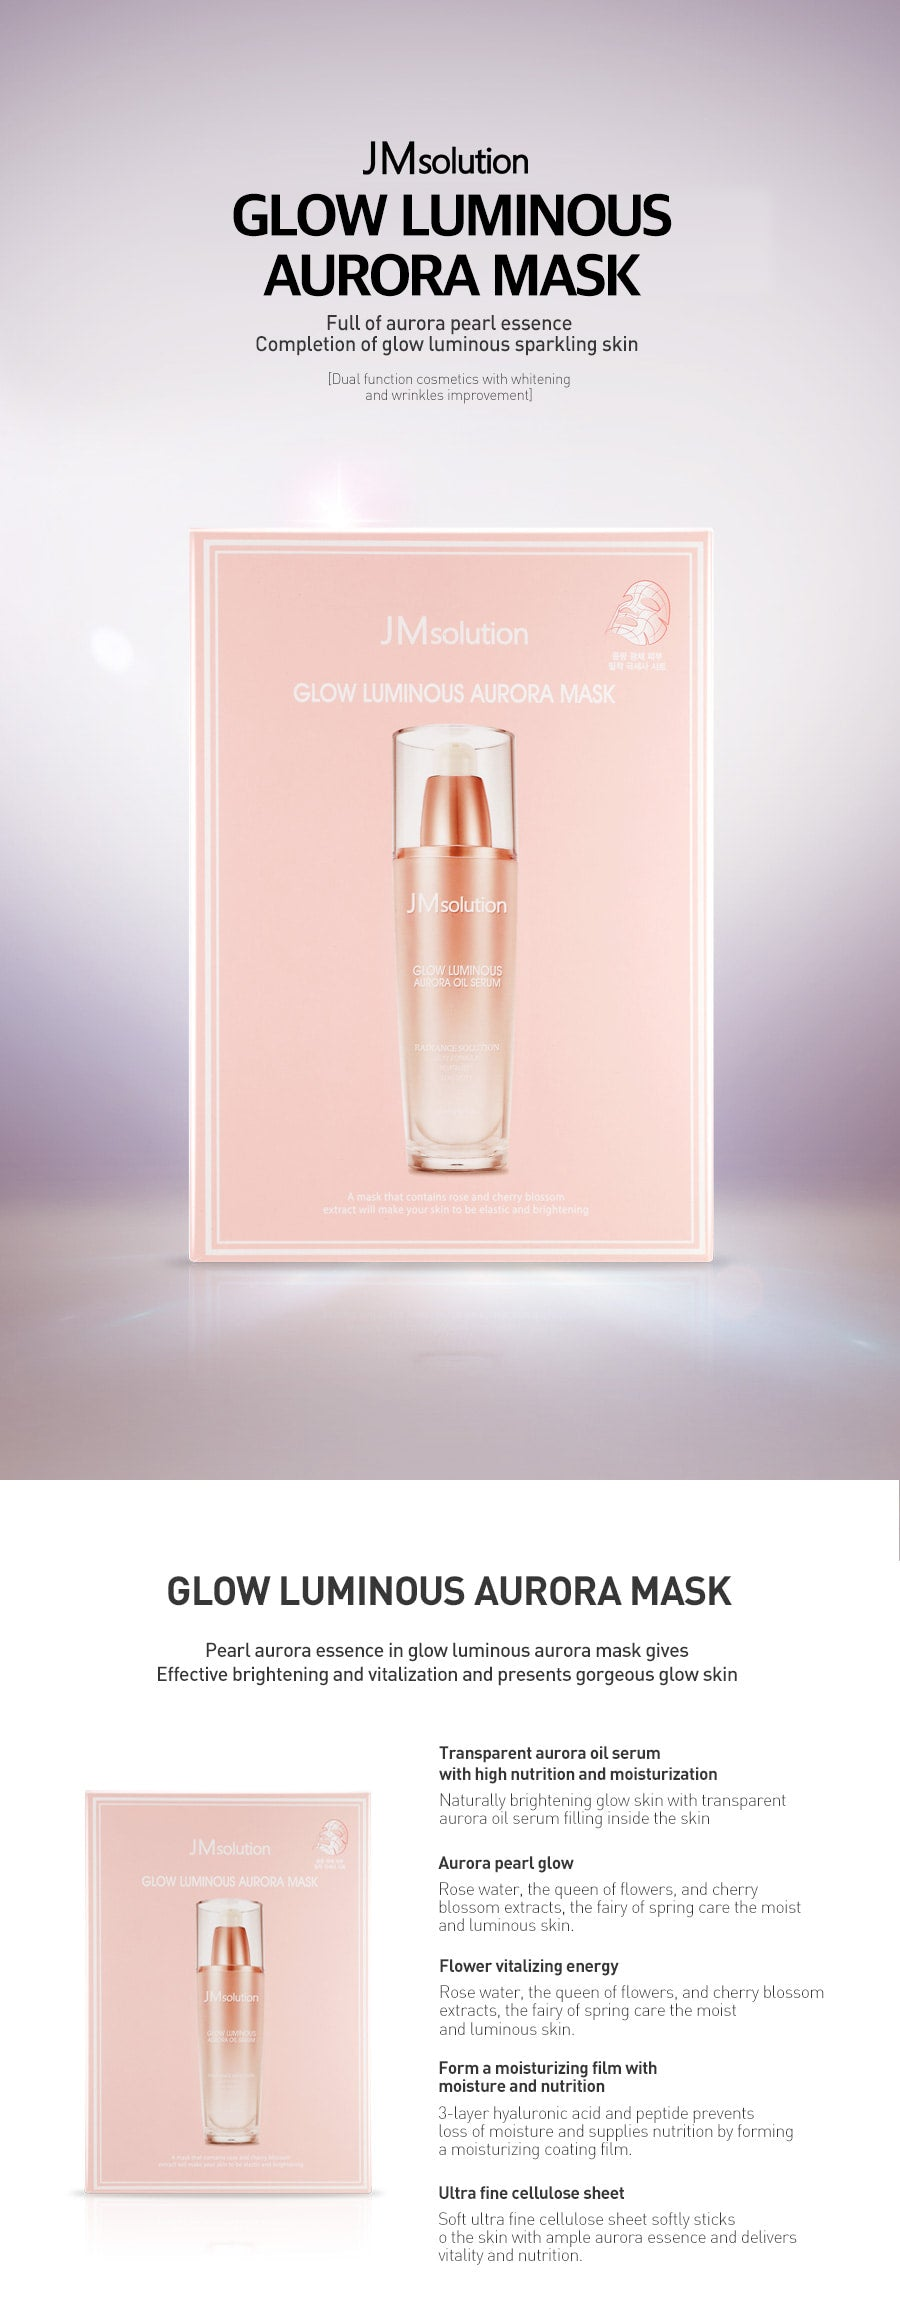 jm_solution_glow_luminous_aurora_mask-1.jpg